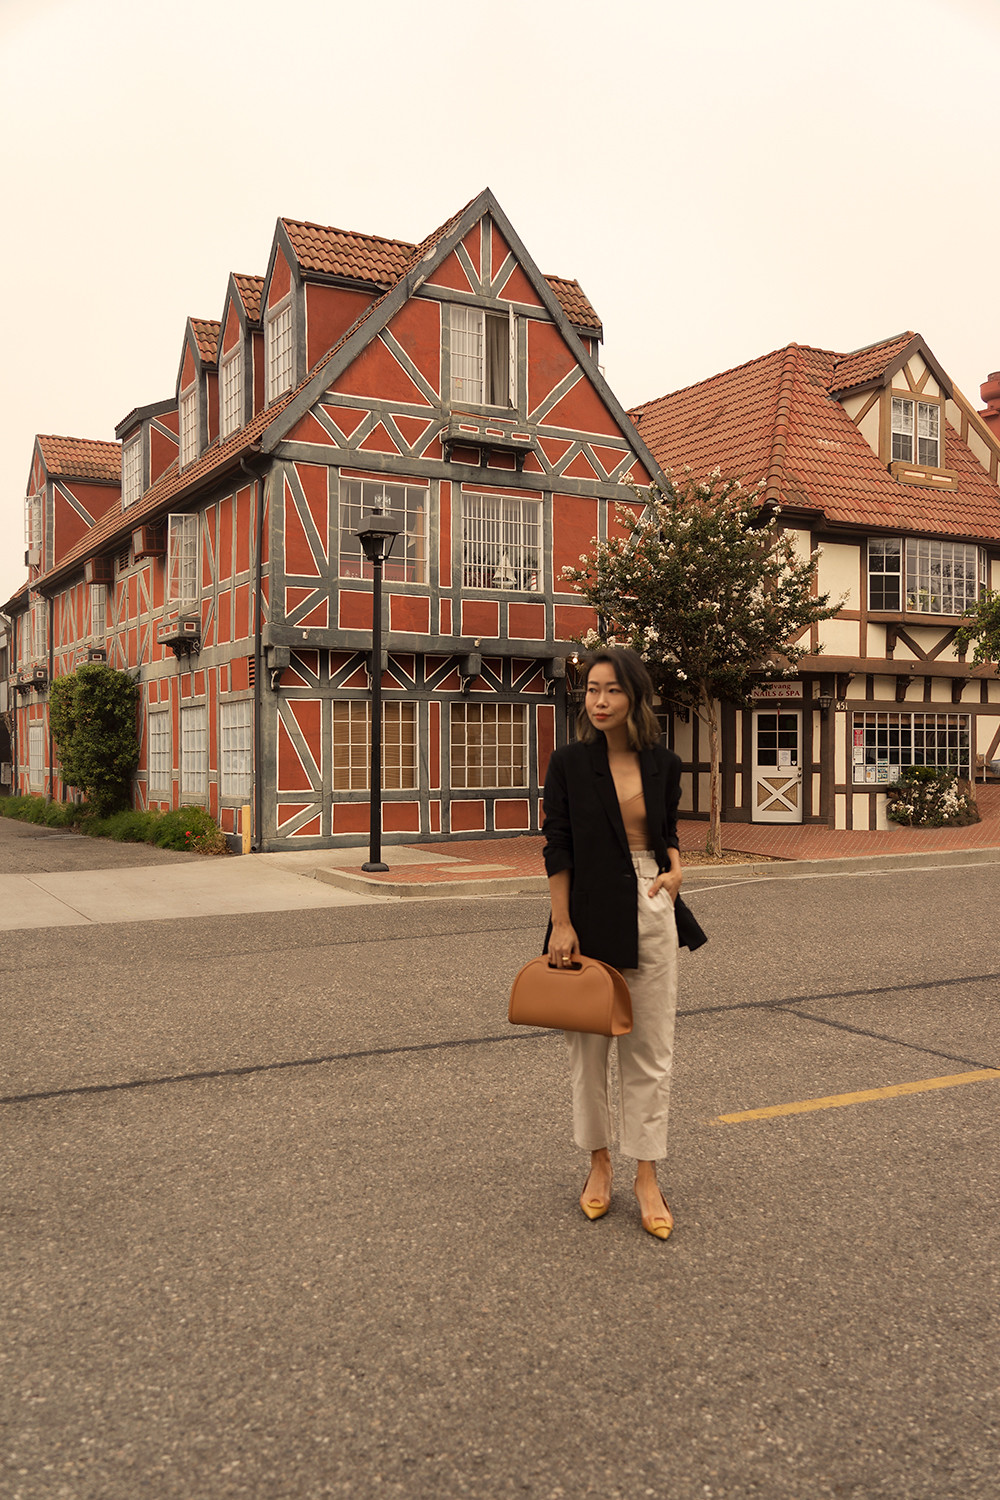 05solvang-california-roadtrip-travel-danish-architecture